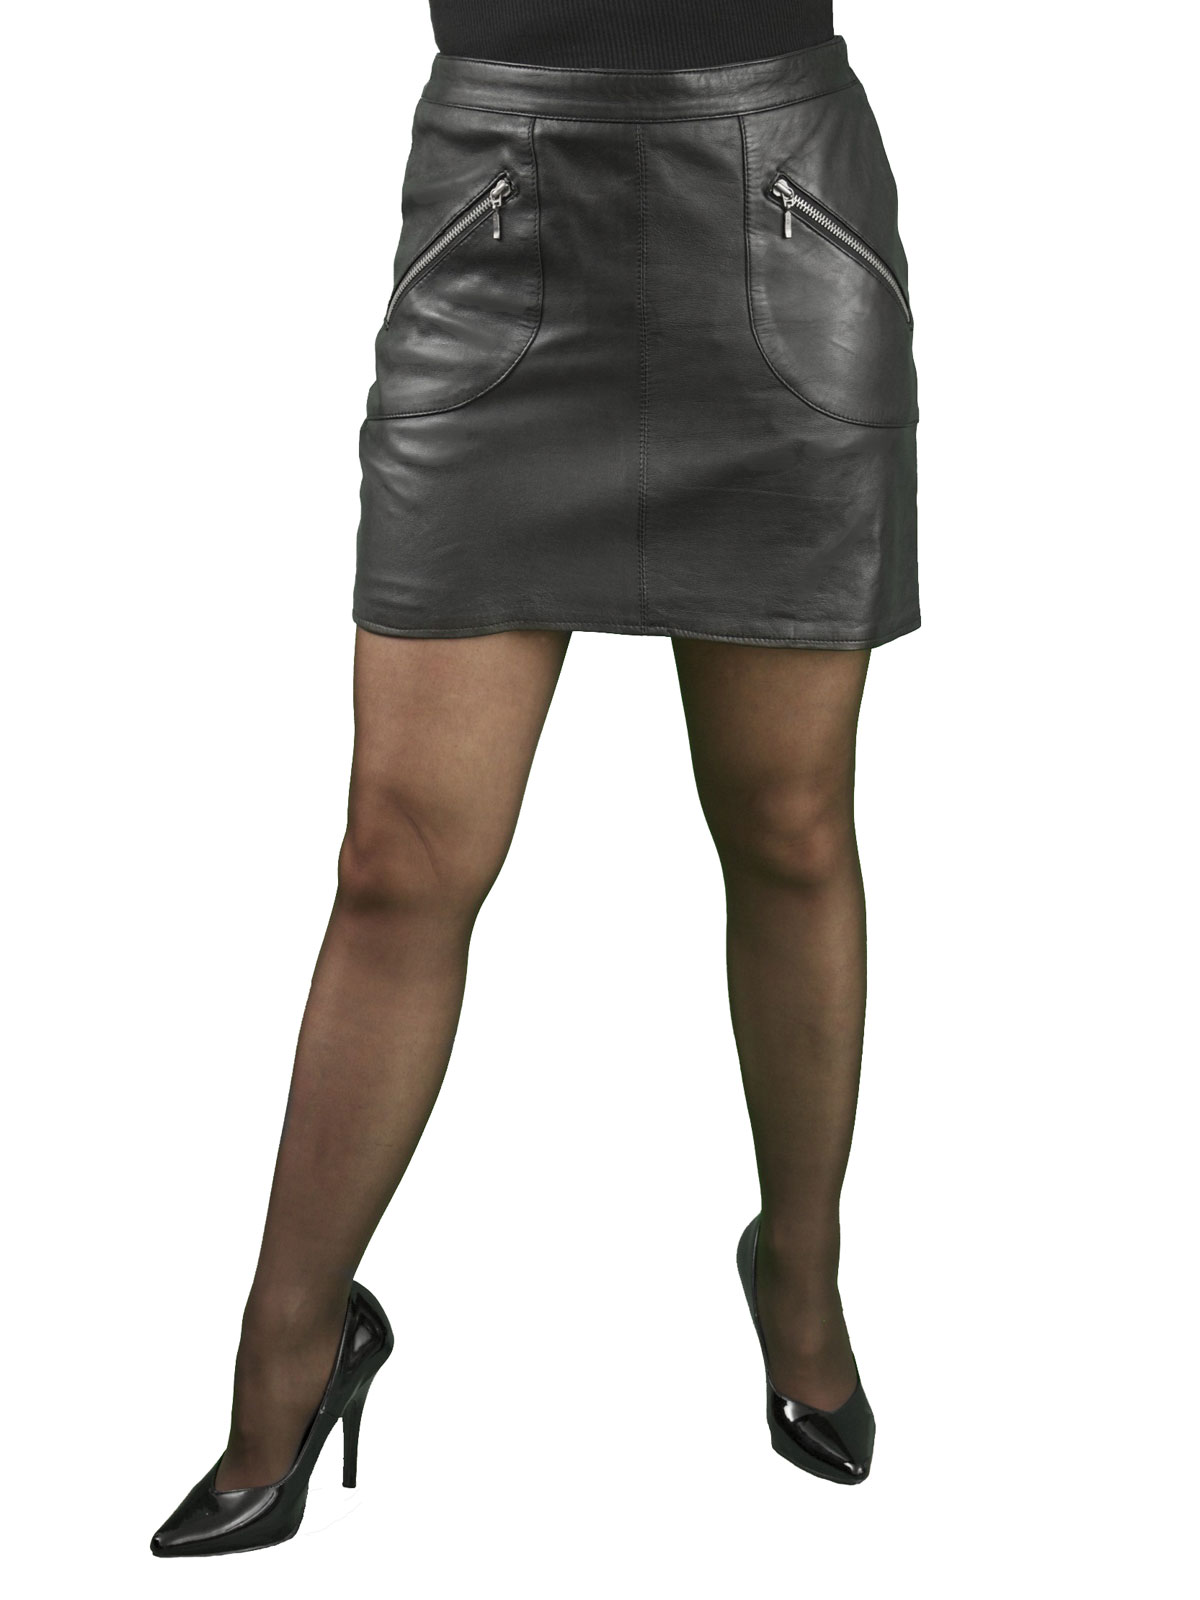 Black leather hipster mini skirt zip pockets